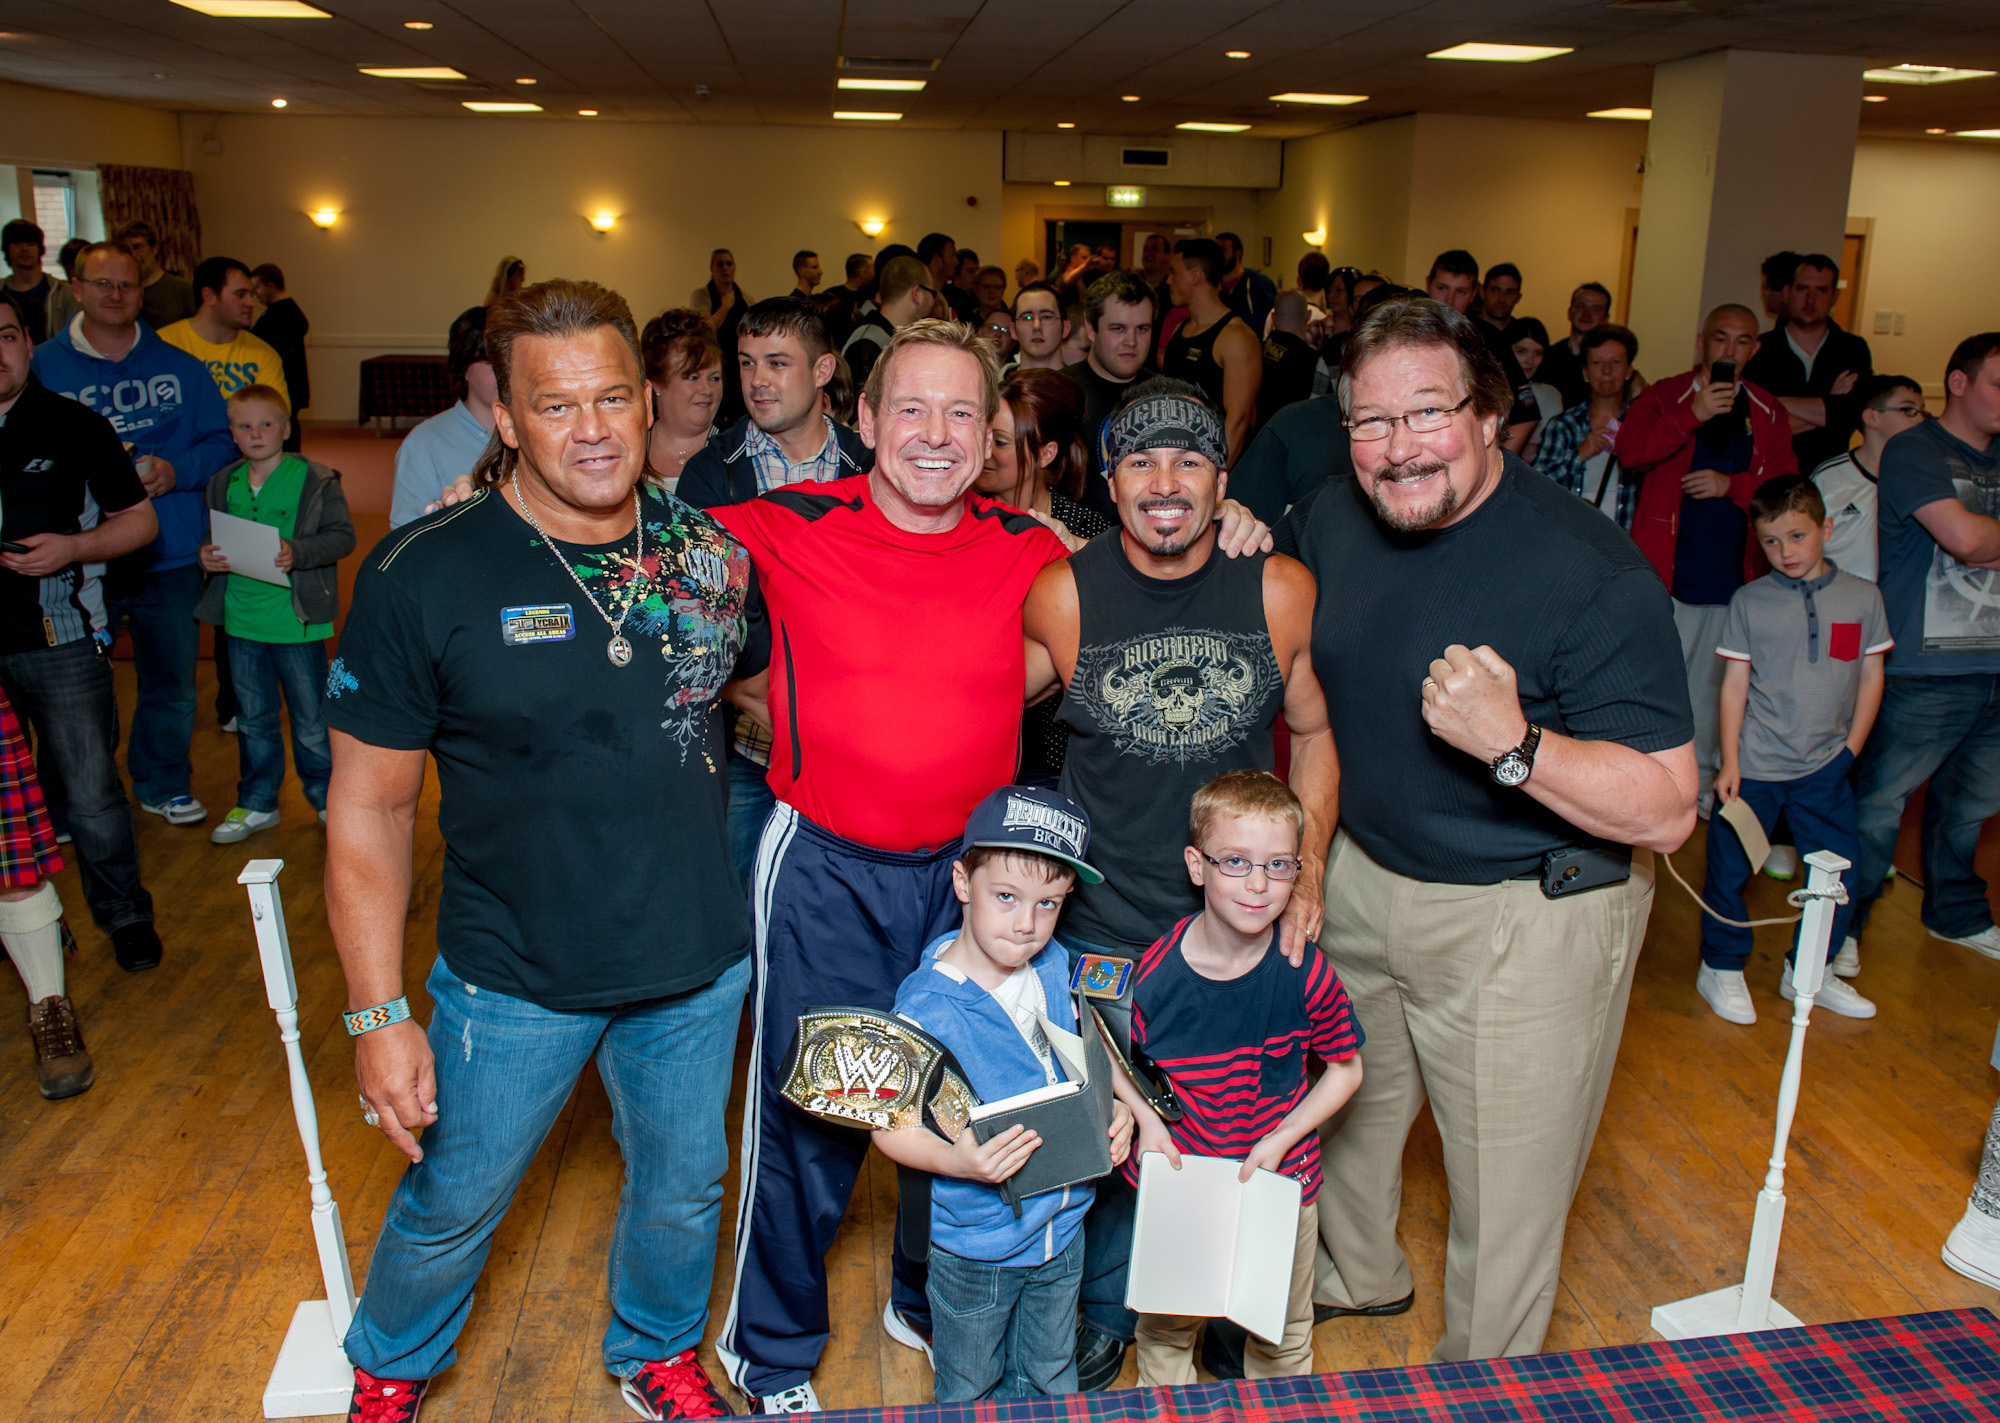 Former WWE superstars in Dundee for a previous Hell for Lycra event. From left, Tatanka, Rowdy Roddy Piper, Chavo Guerrero and Ted DiBiase with young fans